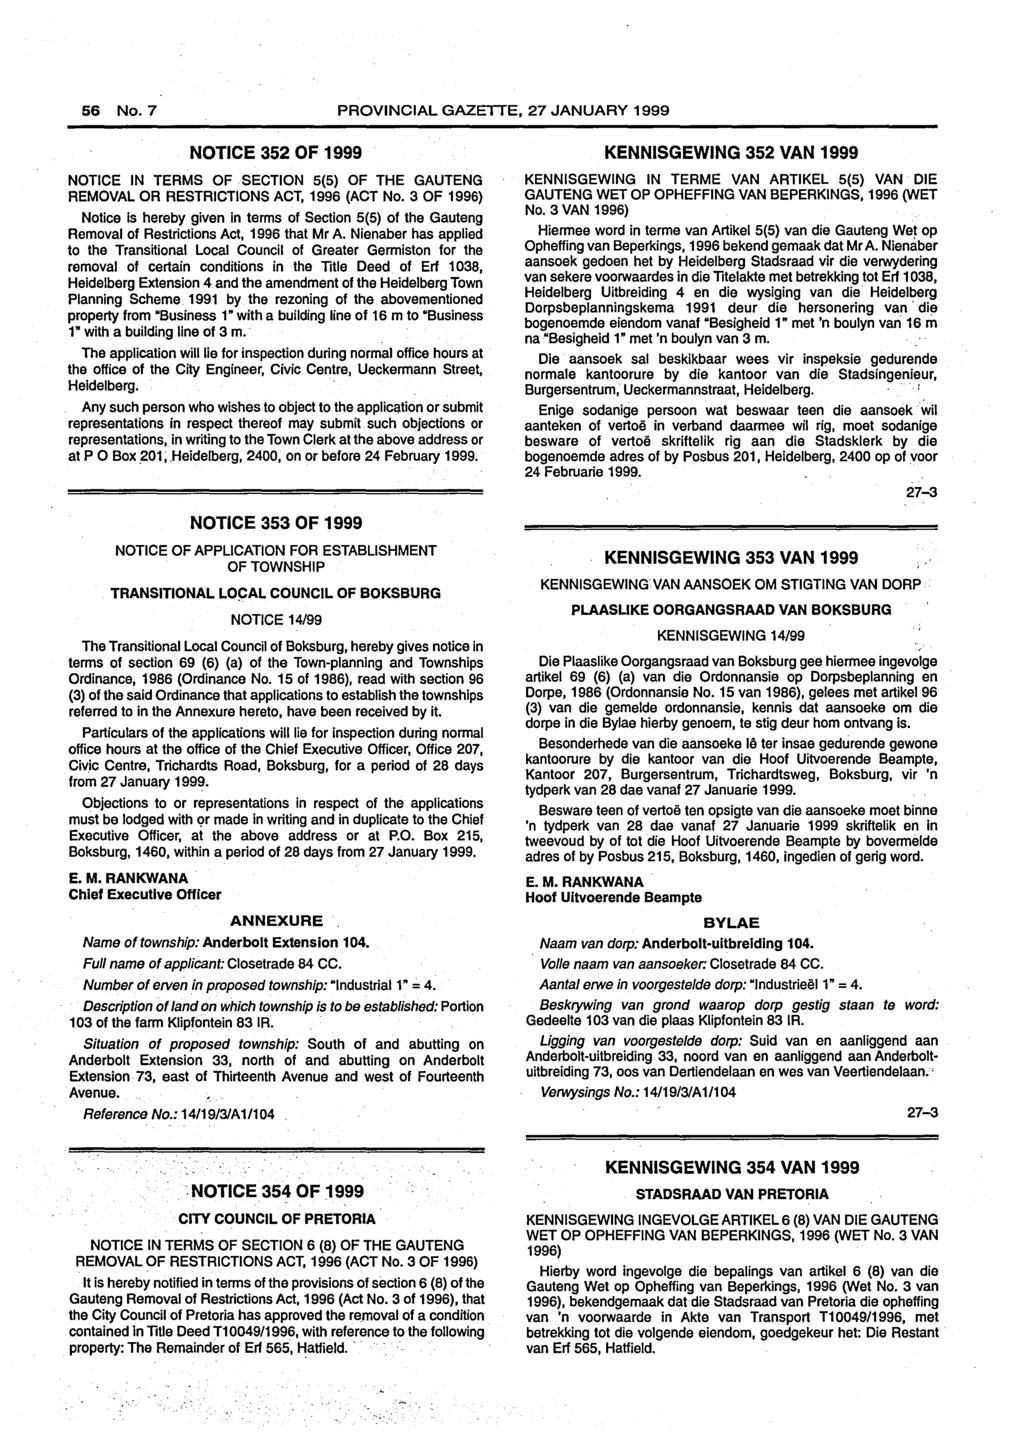 56 No.7 PROVINCIAL GAZETTE, 27 JANUARY 1999 NOTICE 352 OF 1999 NOTICE IN TERMS OF. SECTION 5(5) OF THE GAUTENG REMOVAL OR RESTRICTIONS ACT, 1996 (ACT No.